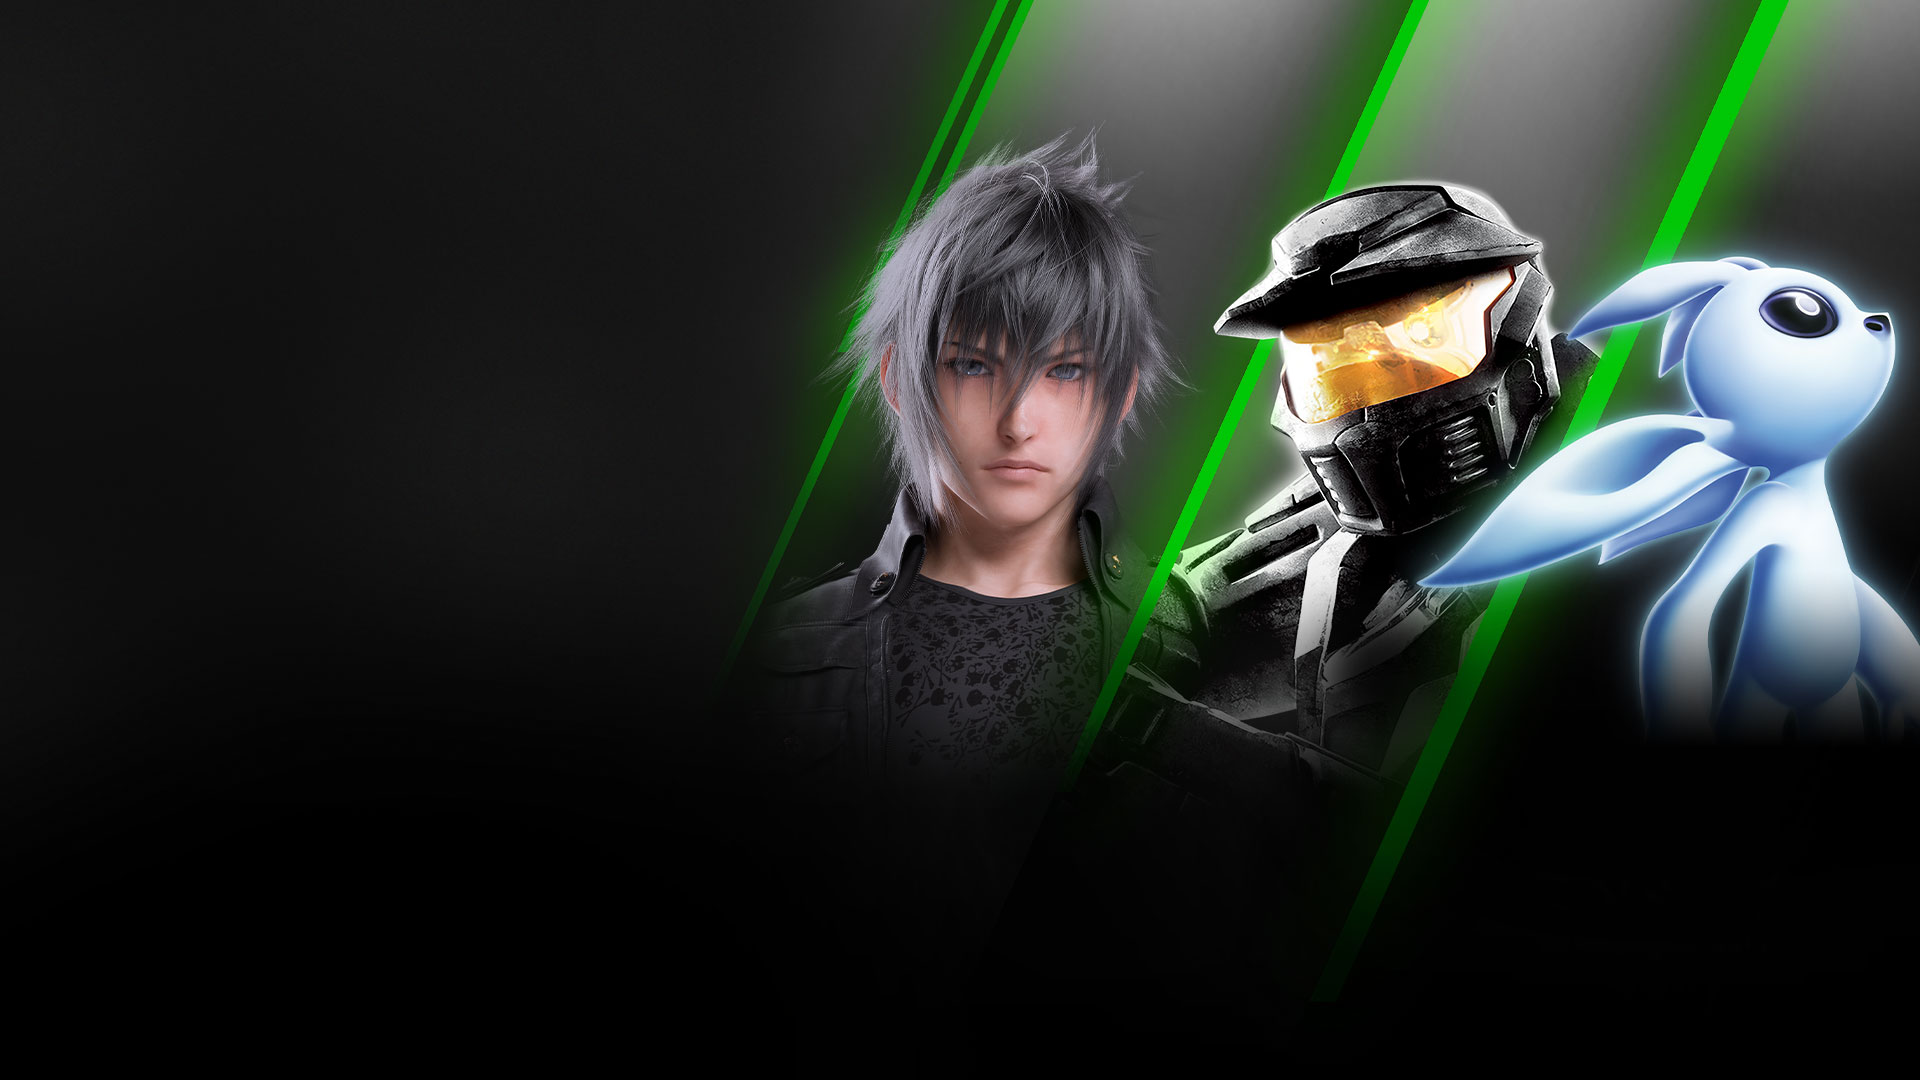 Xbox Game Pass for PC 可用遊戲的拼集,其中包括 Final Fantasy XV、Halo: Combat Evolved Anniversary,以及 Ori and the Will of the Wisps。